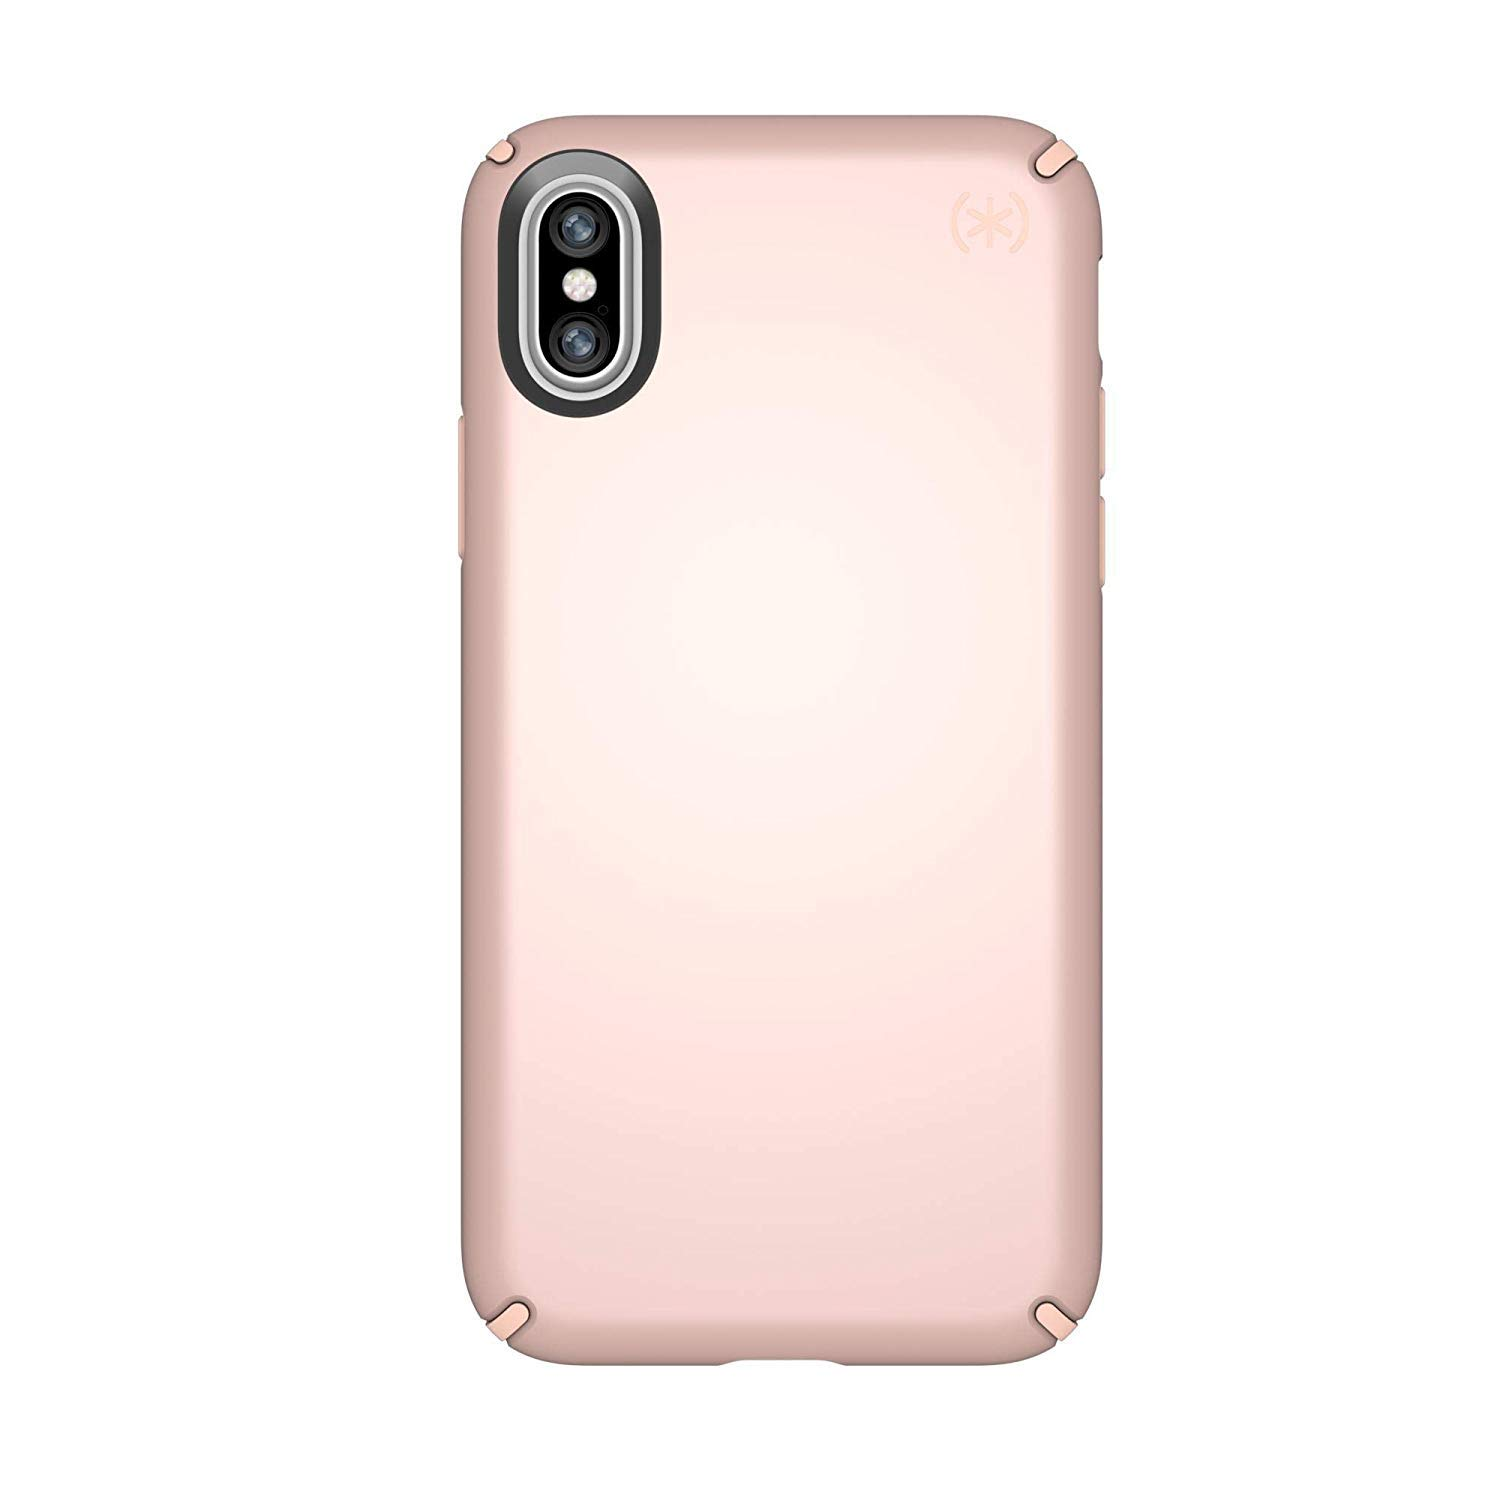 sale retailer 82549 dca0d Speck Products Presidio Metallic Case for iPhone X, Rose Gold  Metallic/Dahlia Peach